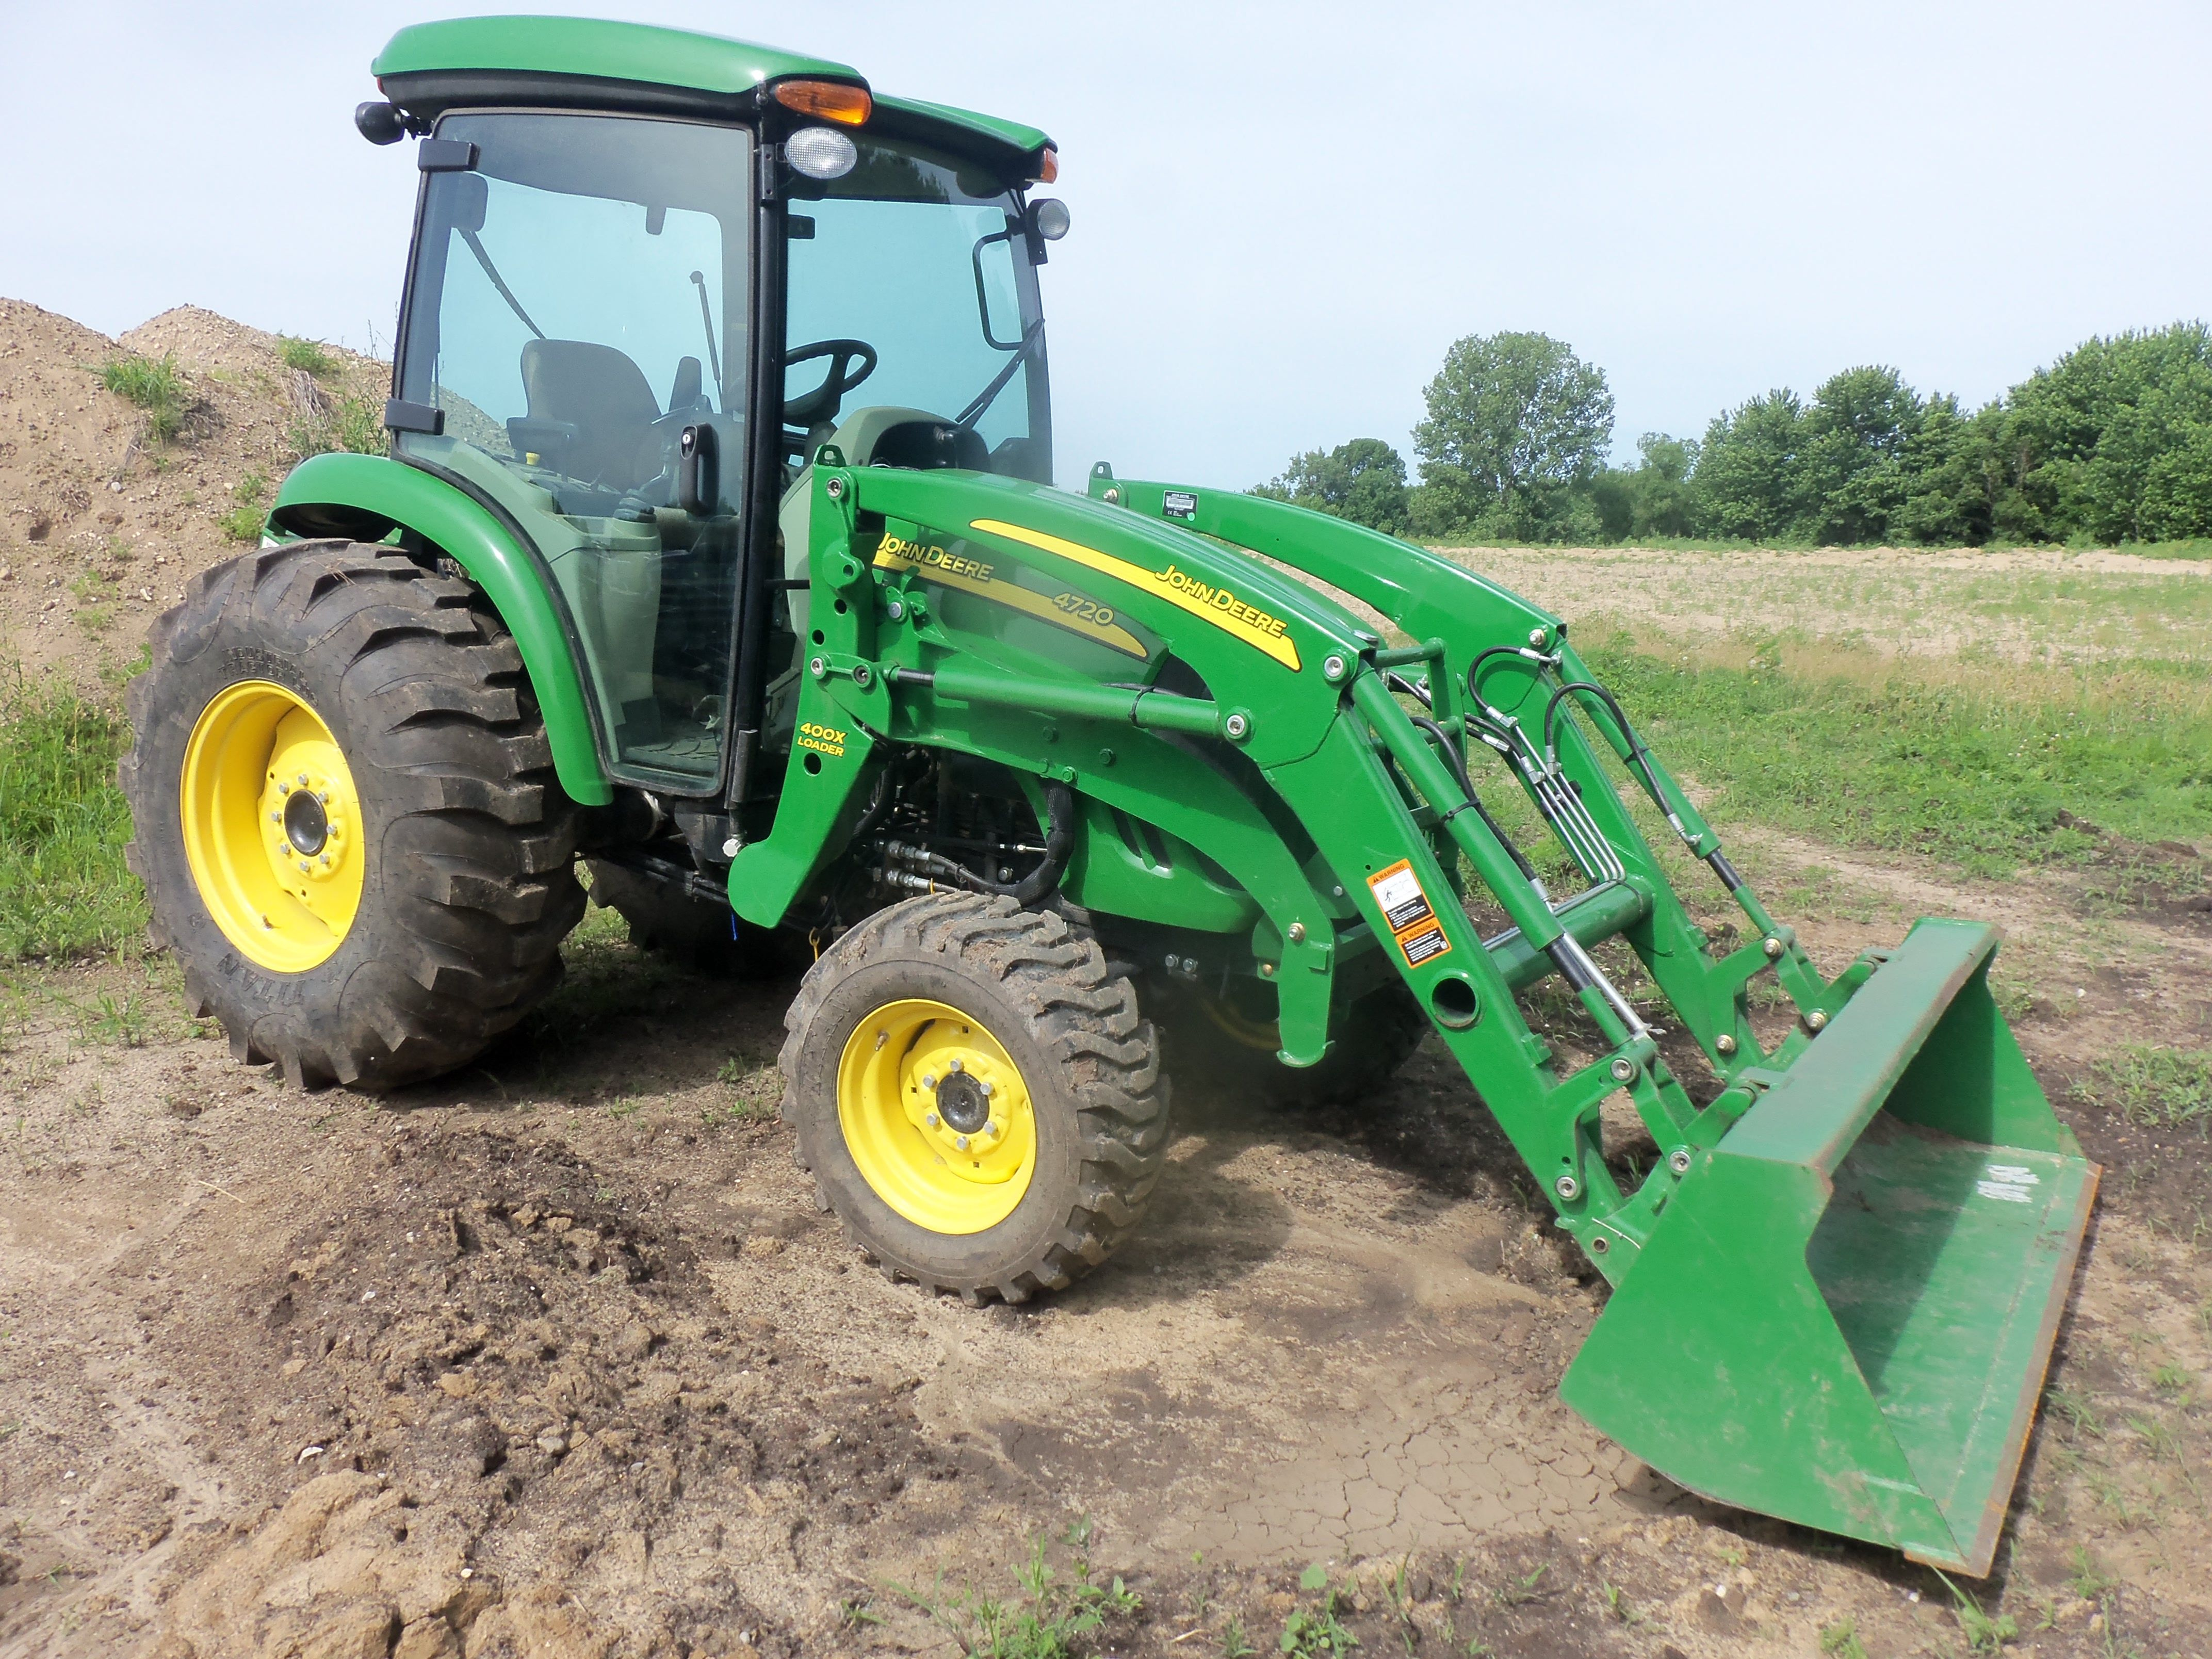 John Deere 4720 cab tractor with 400CX Loader.66 engine hp,56 PTO hp from a  turbocharged 149 cid diesel,3,700 lbs,15 gallon fuel tank,72 inch wheelbase